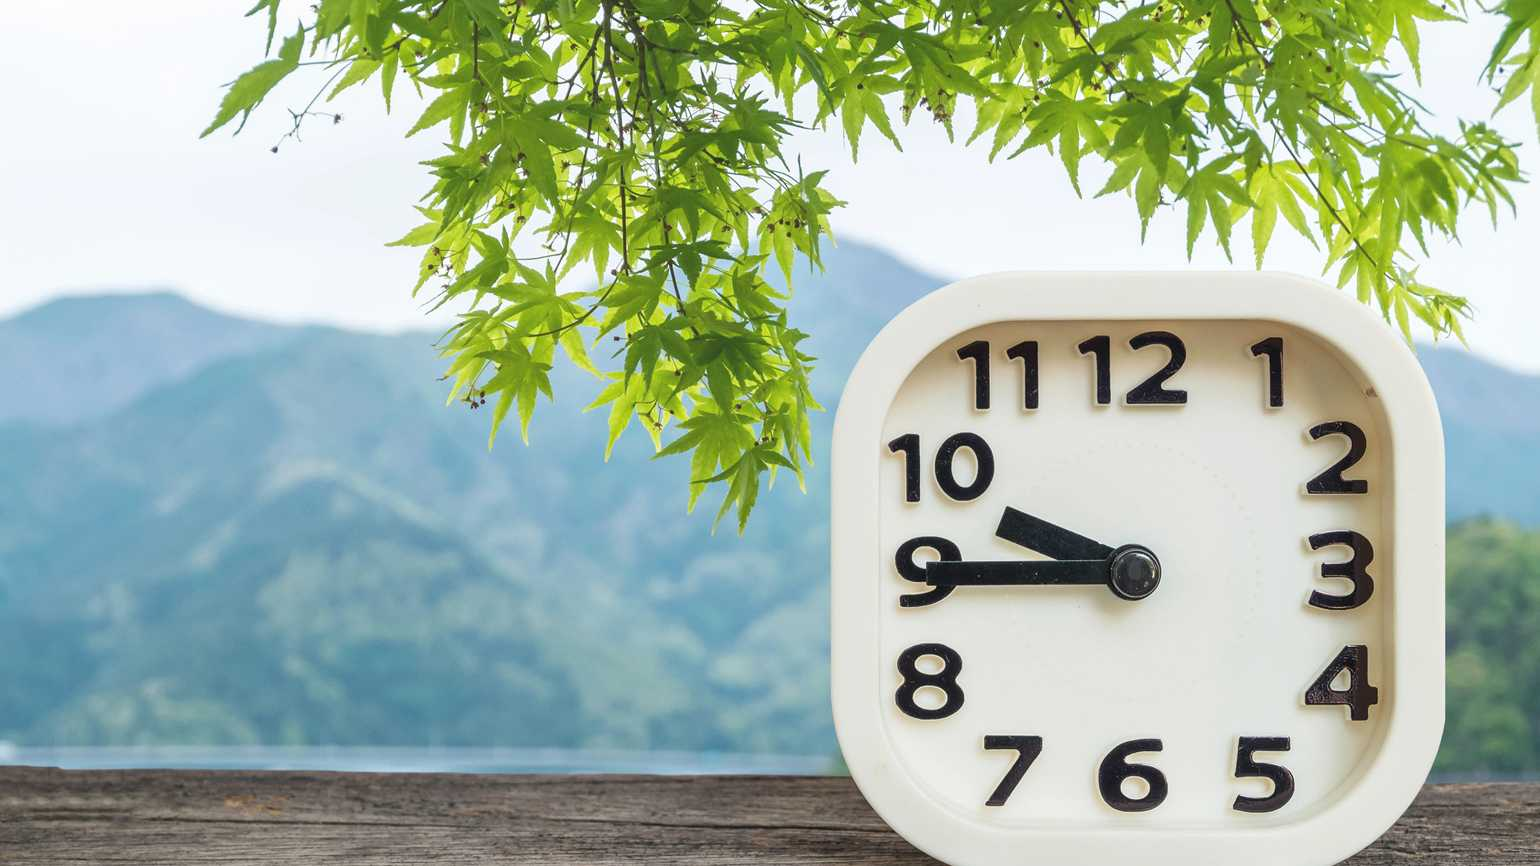 Plan a 'Worry Hour' to Help Ease Anxiety